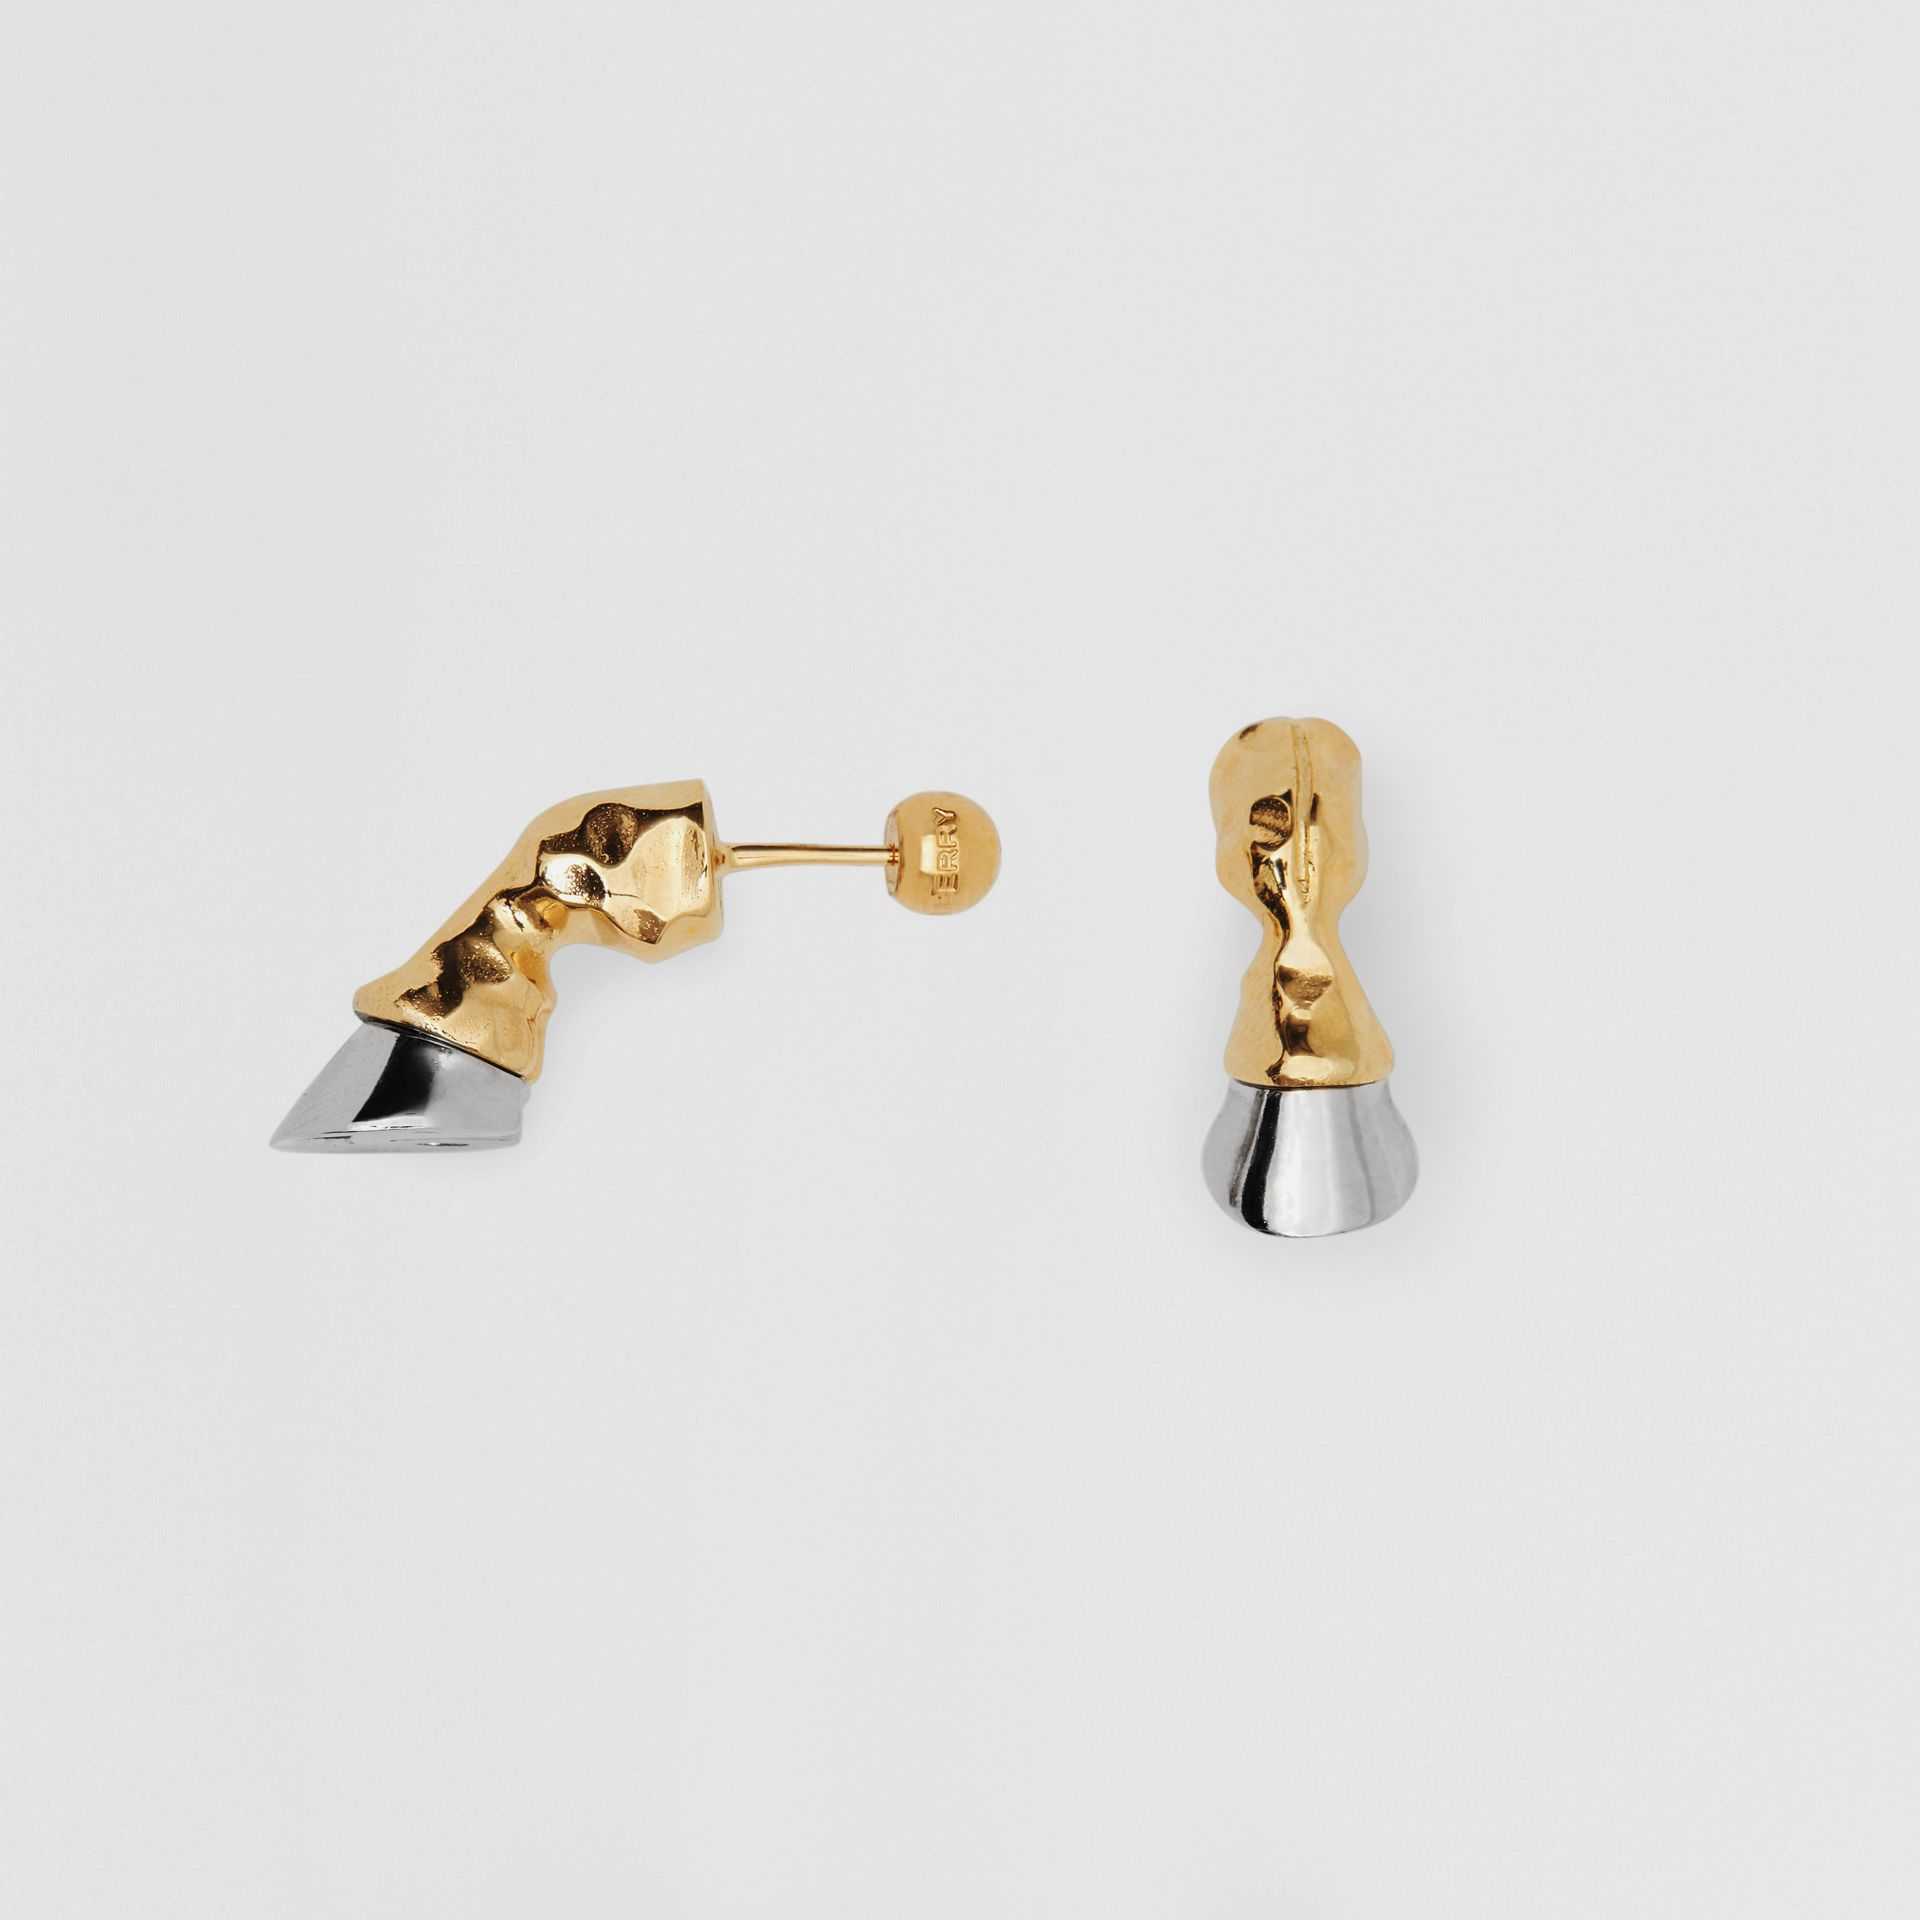 Gold and Palladium-plated Hoof Earrings in Palladio/light - Women | Burberry Singapore - gallery image 3